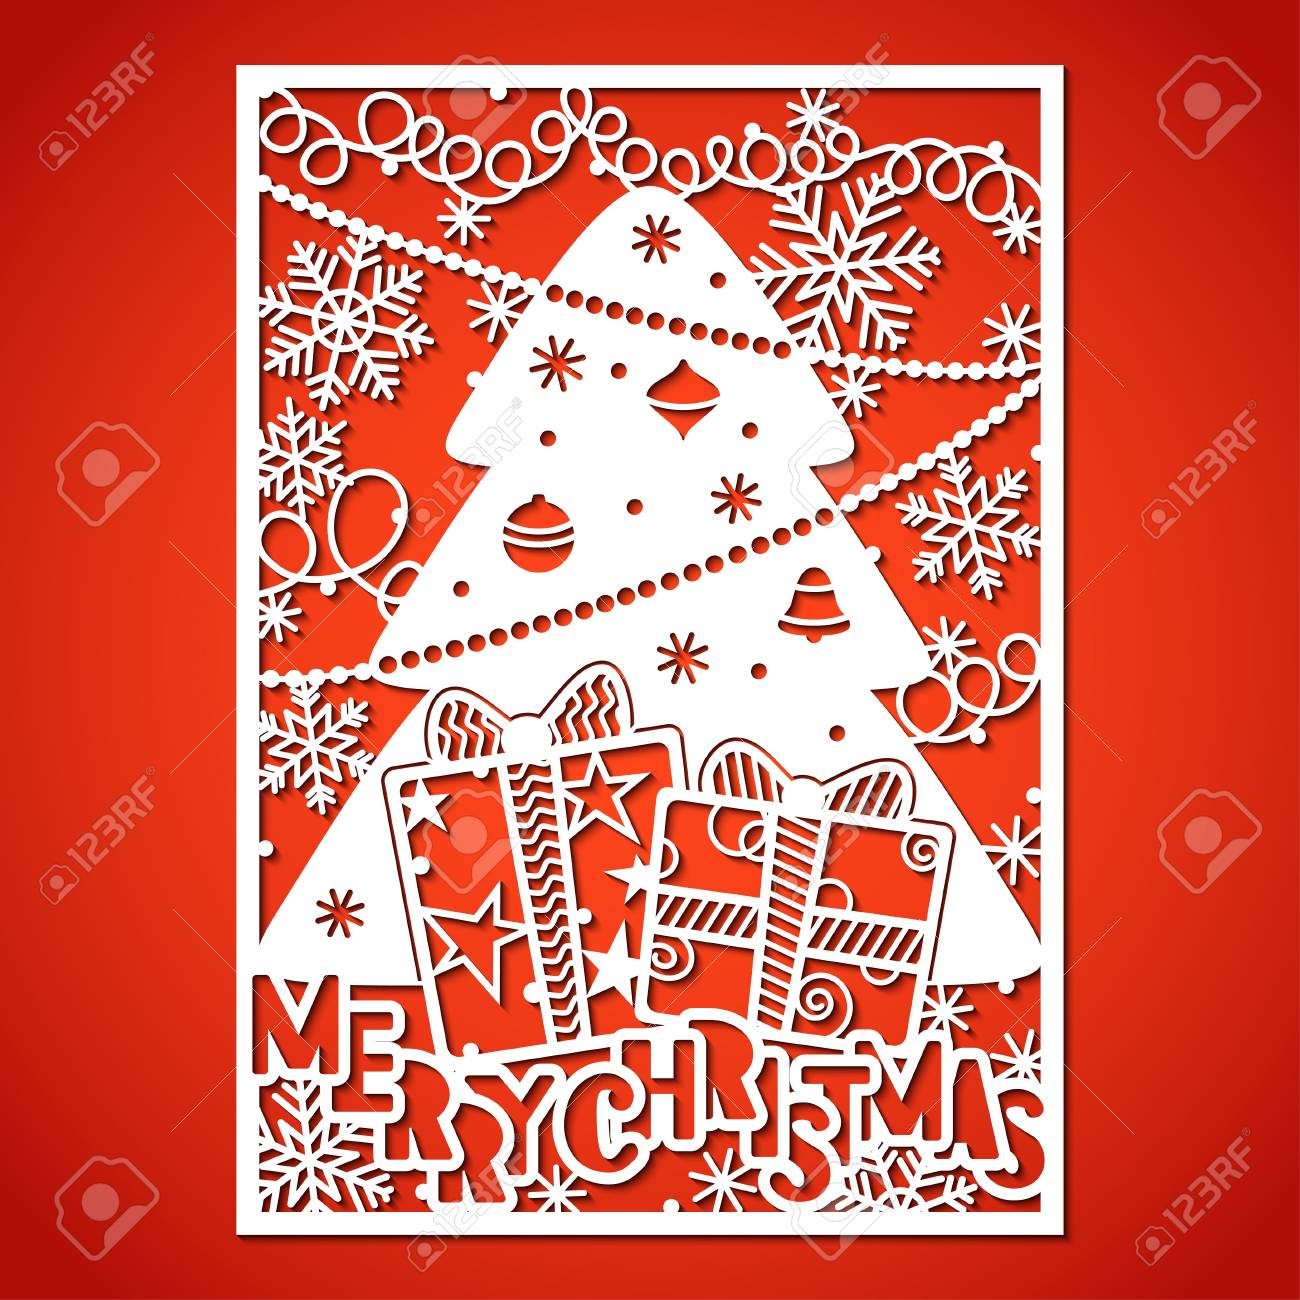 Christmas tree with decorations. Laser Cutting template for greeting cards, envelopes, invitations, interior elements. - 112226681